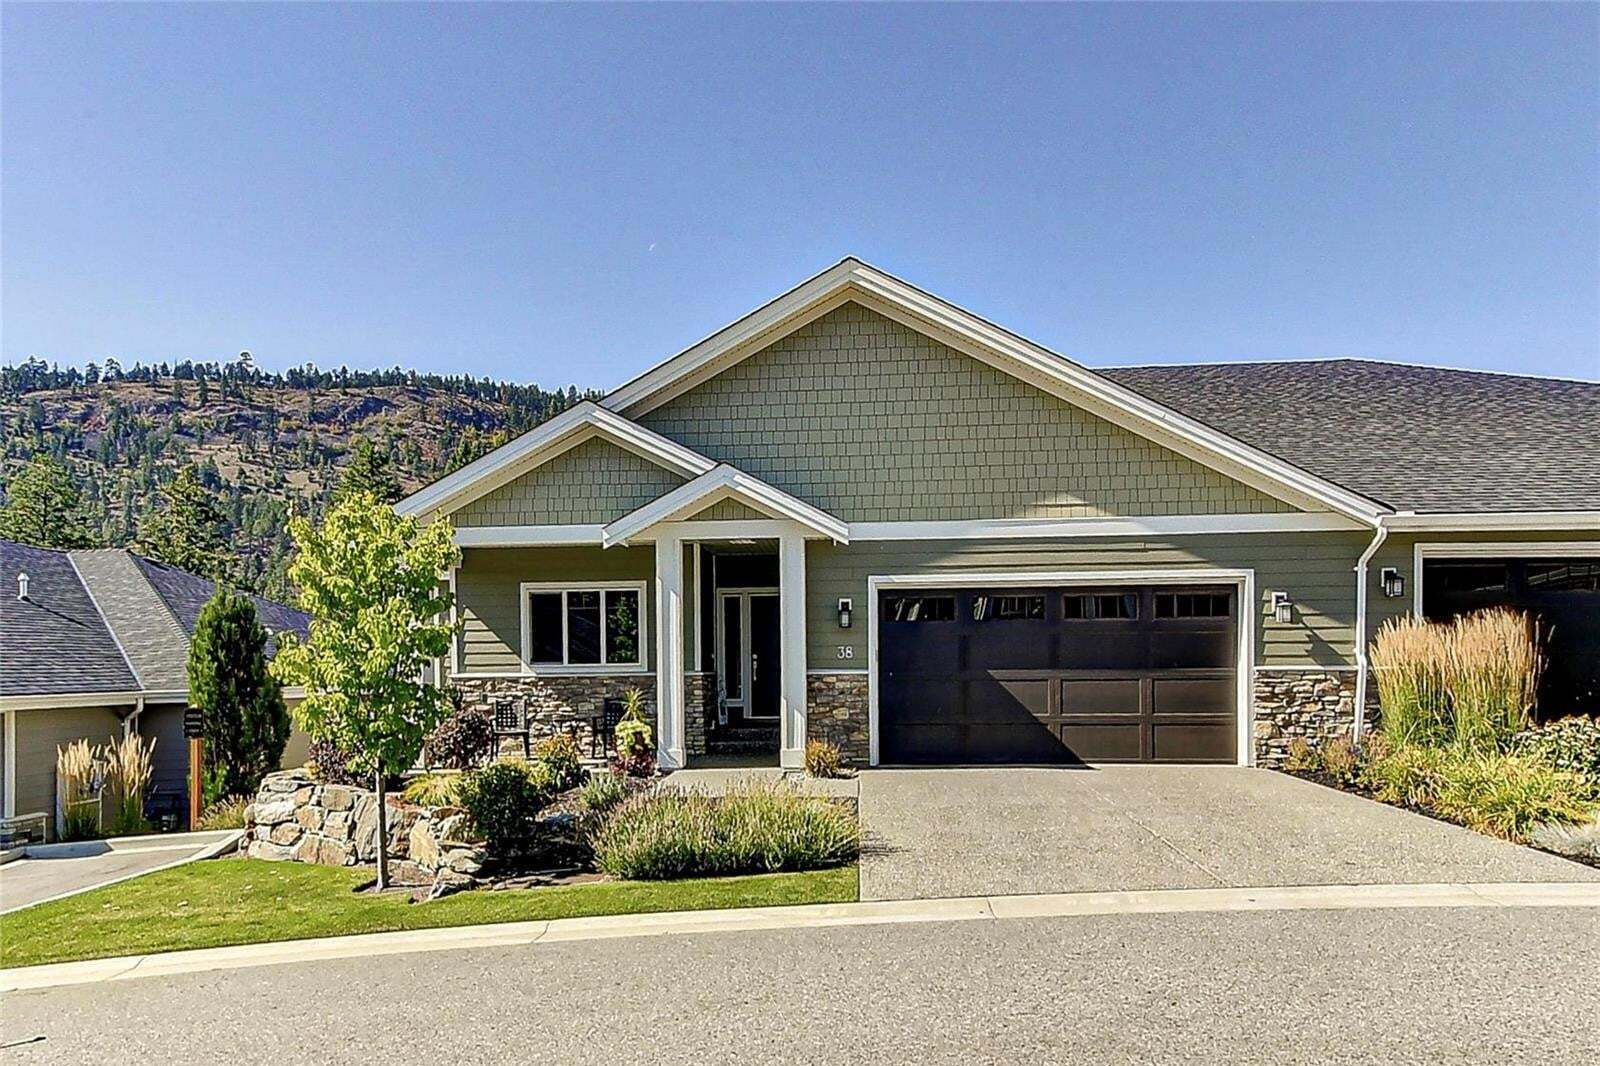 Townhouse for sale at 1450 Union Rd Unit 38 Kelowna British Columbia - MLS: 10215127